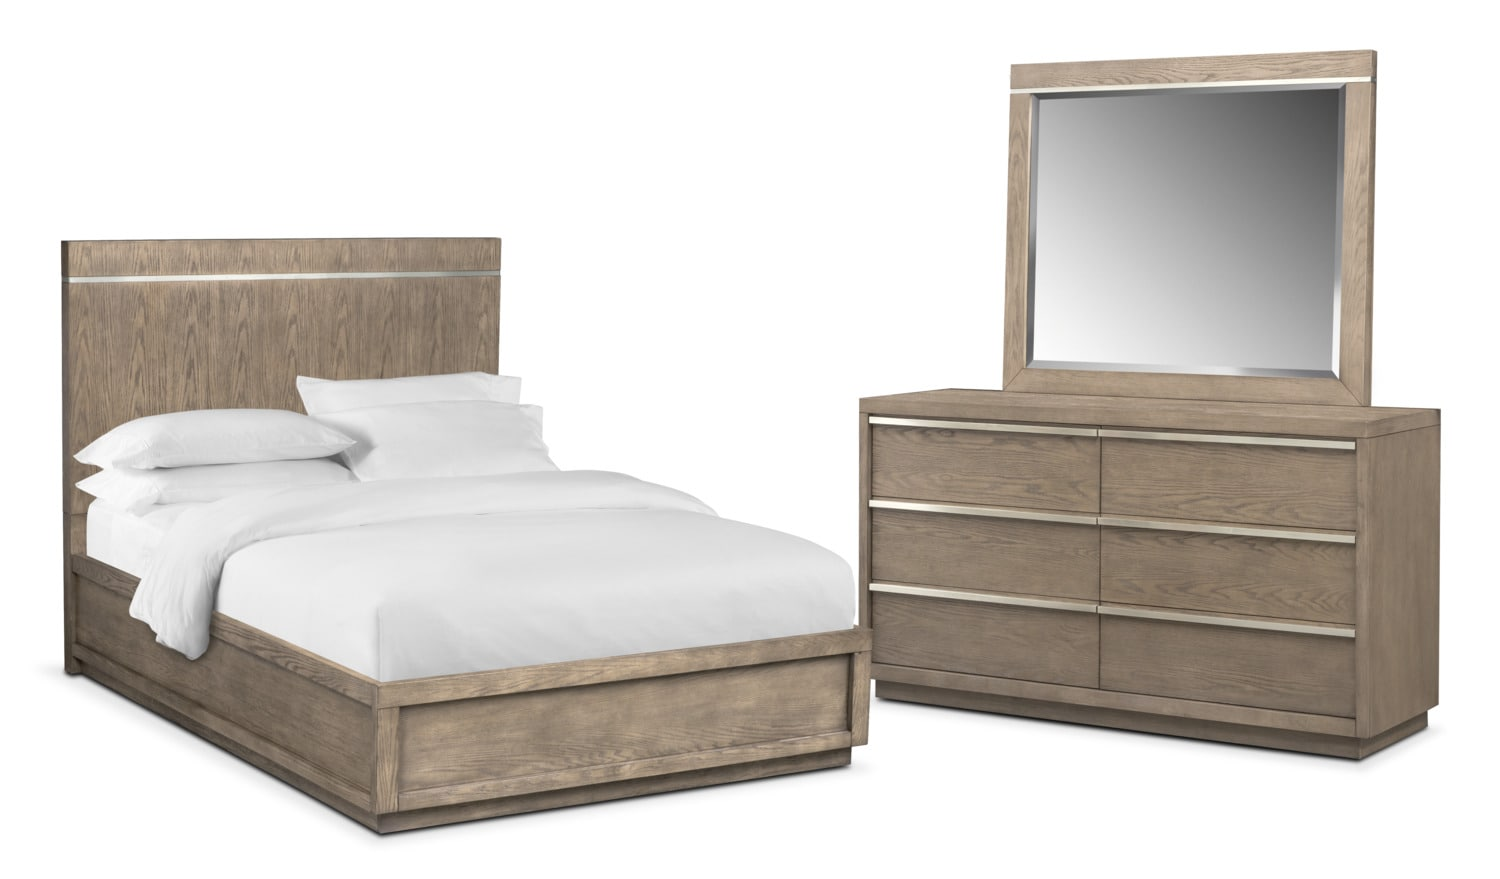 Bedroom Furniture - Gavin 5-Piece Bedroom Set with Dresser and Mirror